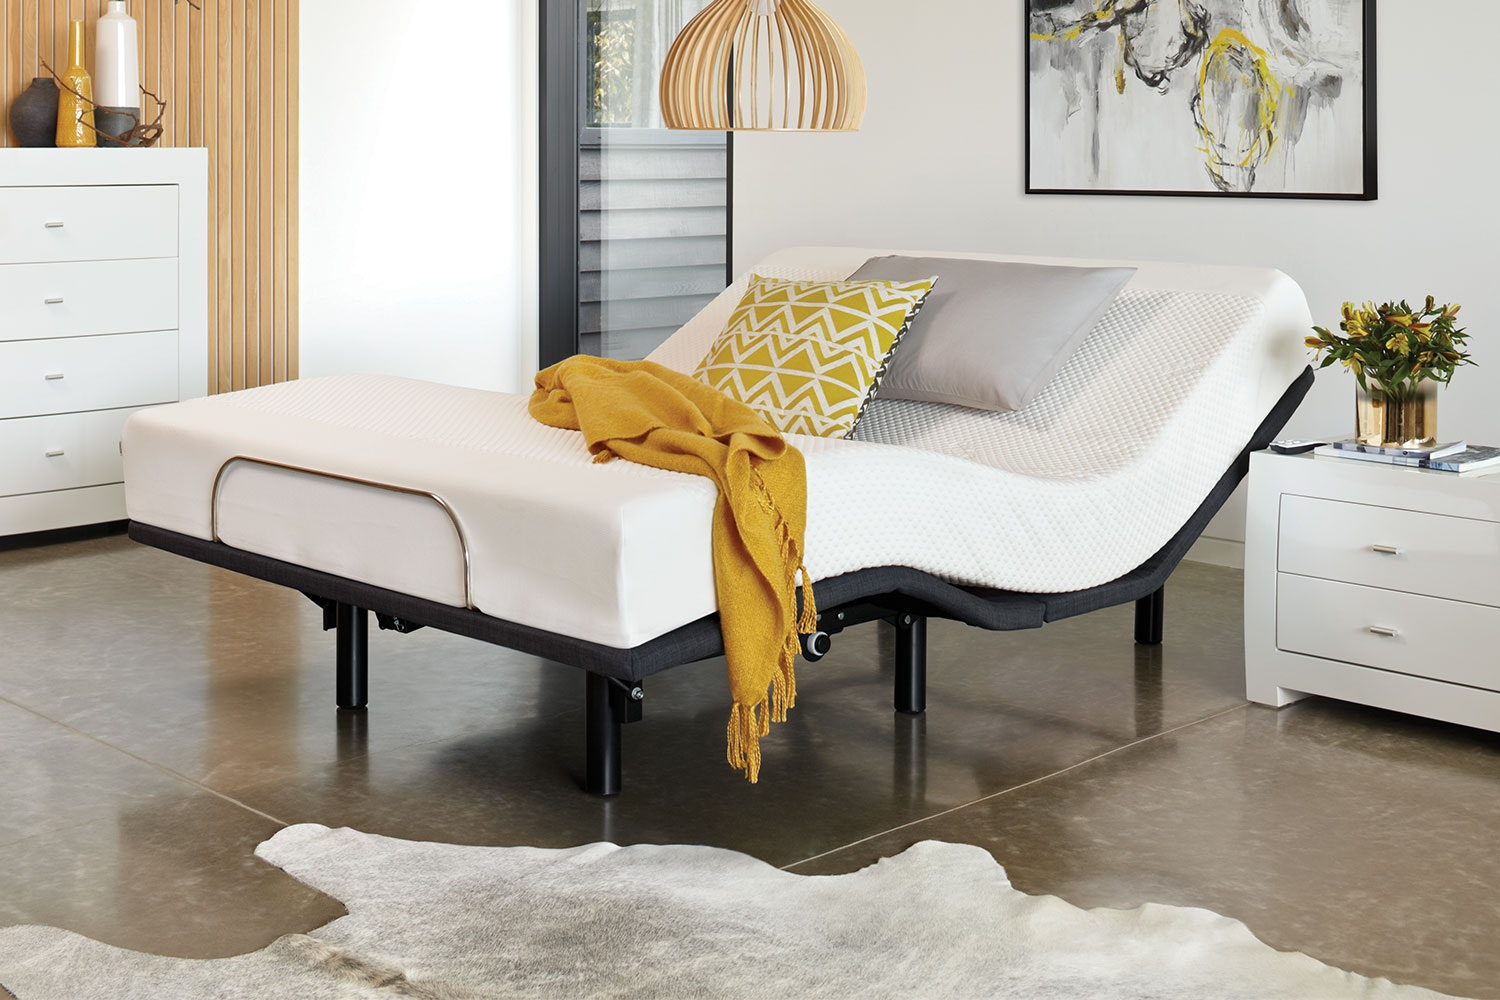 19cm King Single Mattress with Essential Adjustable Base by Tempur